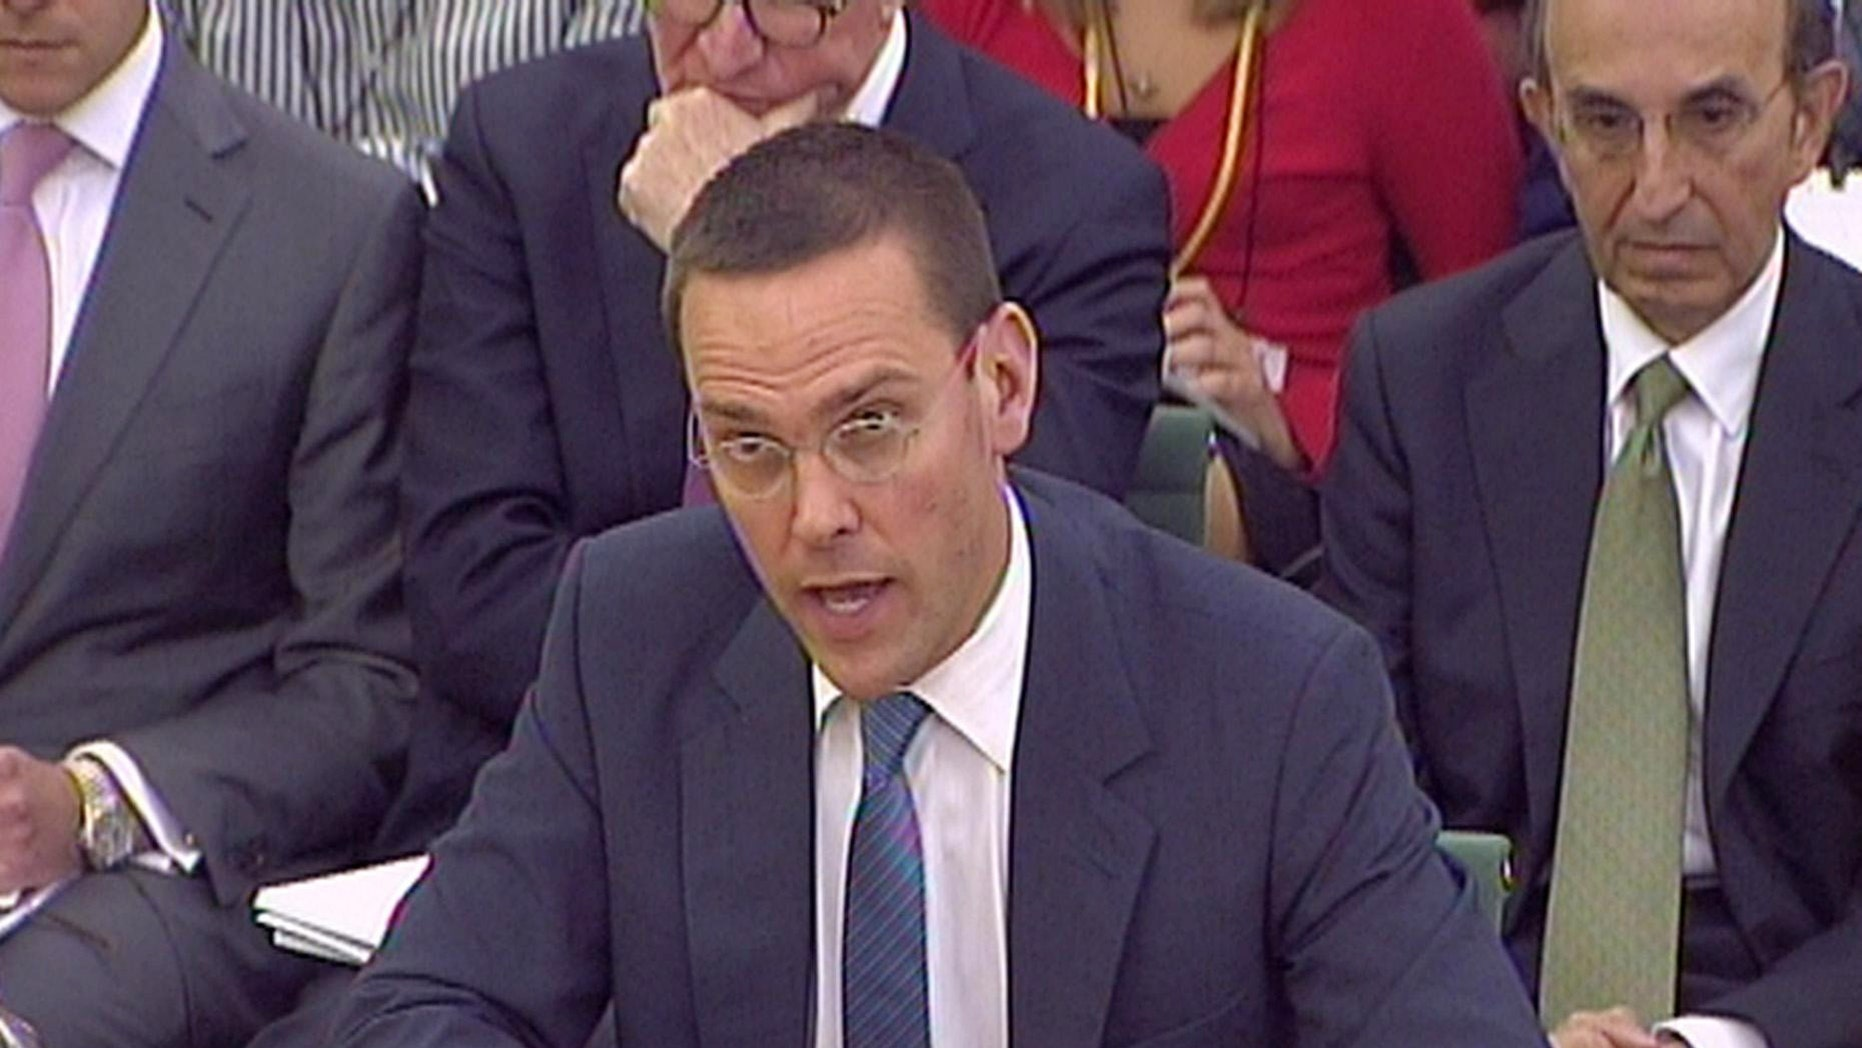 James Murdoch, gives evidence to the Culture, Media and Sport Select Committee on the News of the World phone-hacking scandal in this image taken from TV in Portcullis House in central London Tuesday July 19 2011.